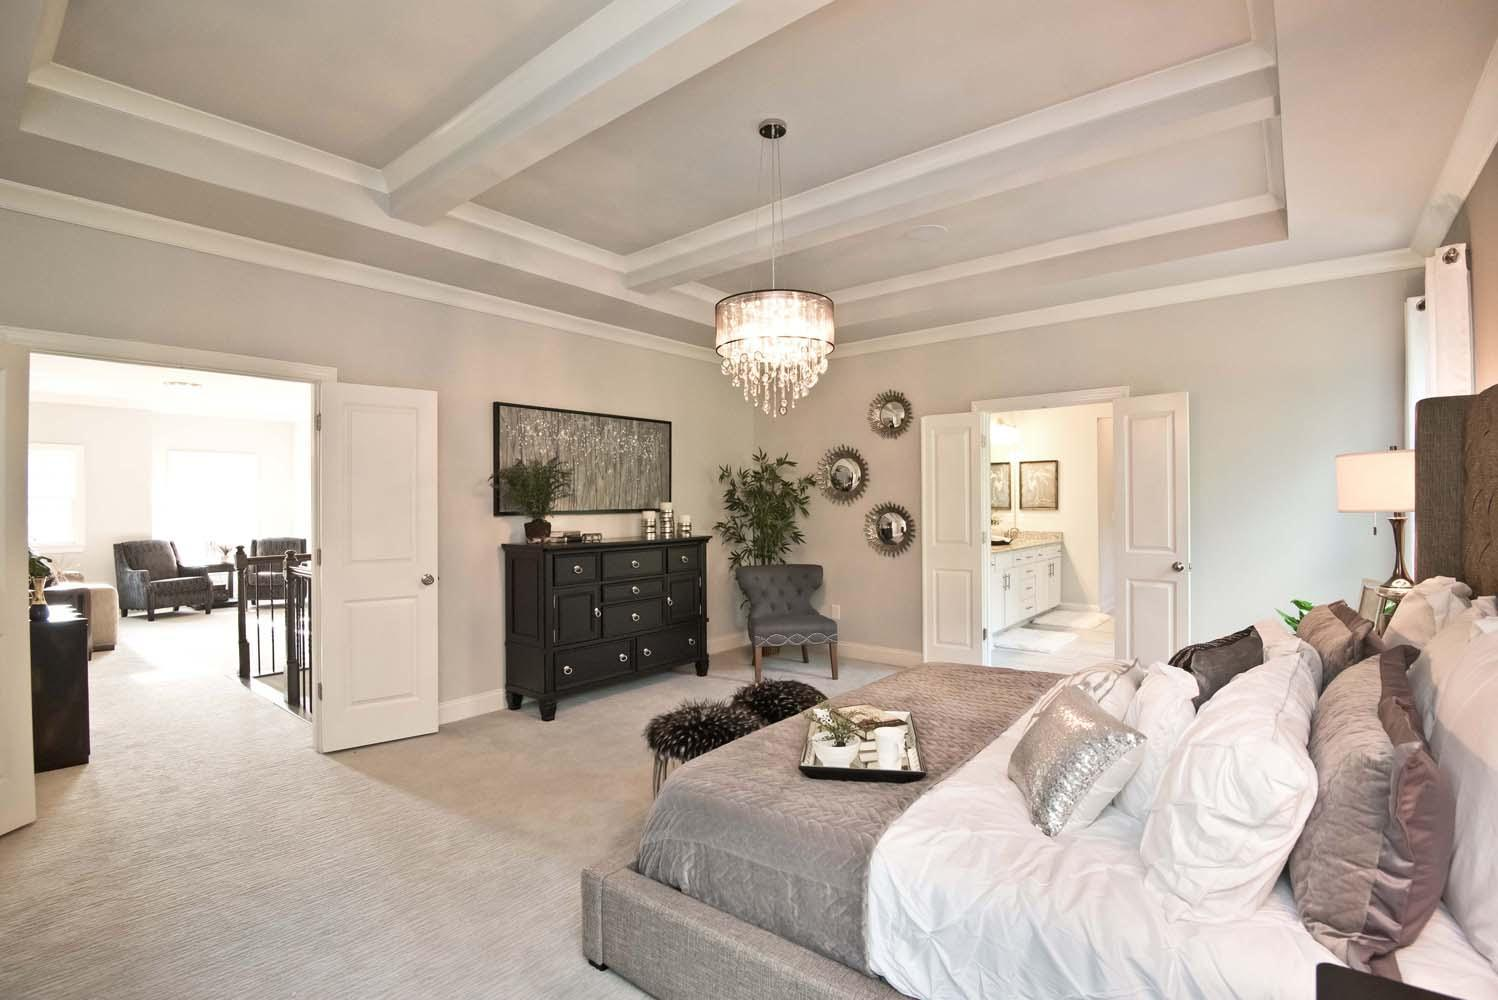 Bedroom featured in the Barkley By Chafin Communities in Atlanta, GA